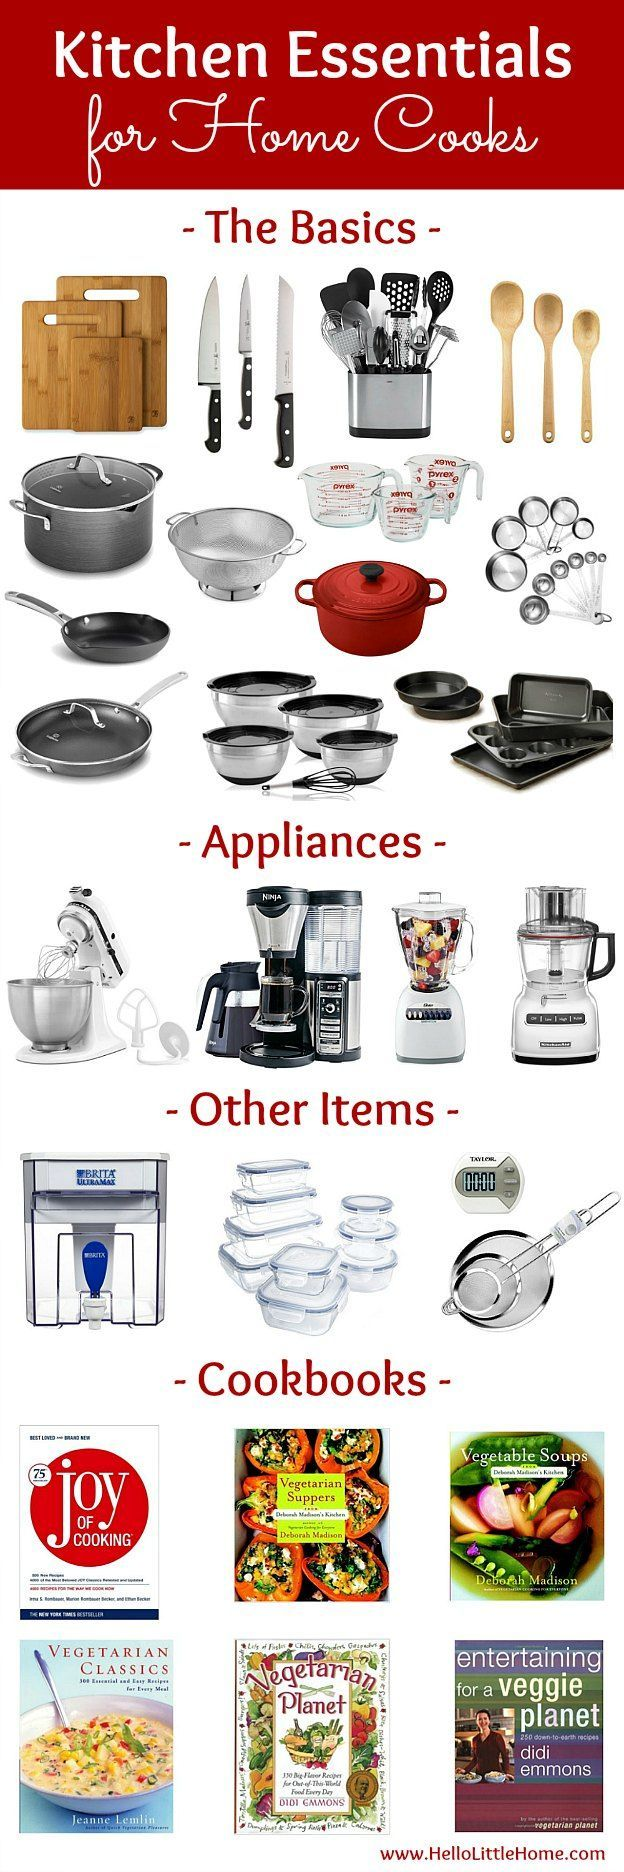 Kitchen Essentials for Home Cooks From basics to f…